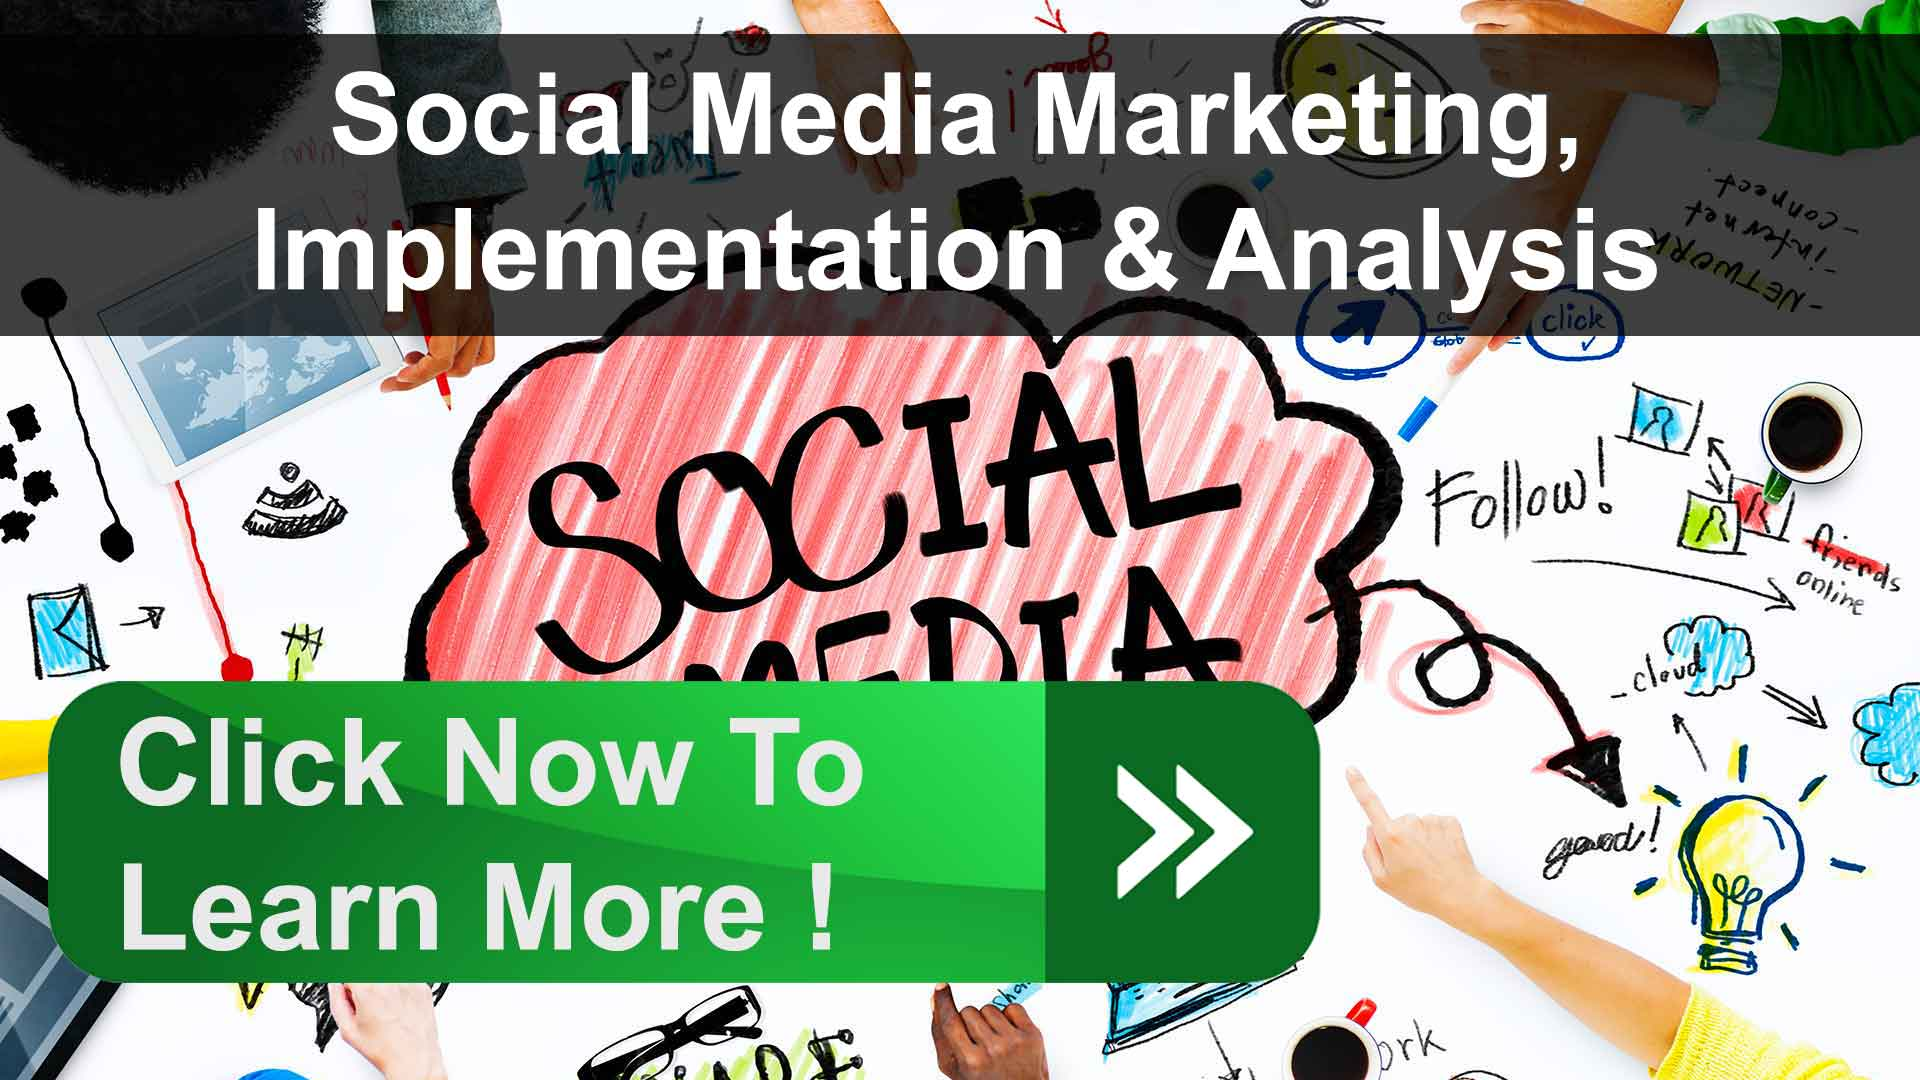 Full-Service Social Media Marketing, Research, Implementation & Analysis